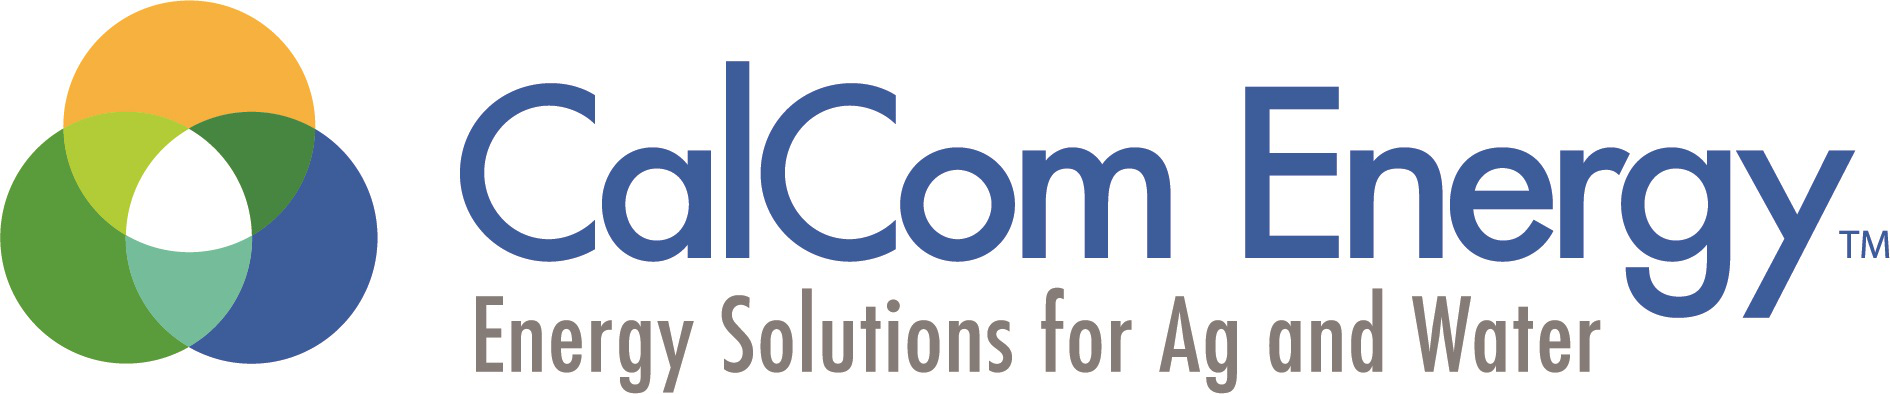 CalCom Energy is Employee-Owned